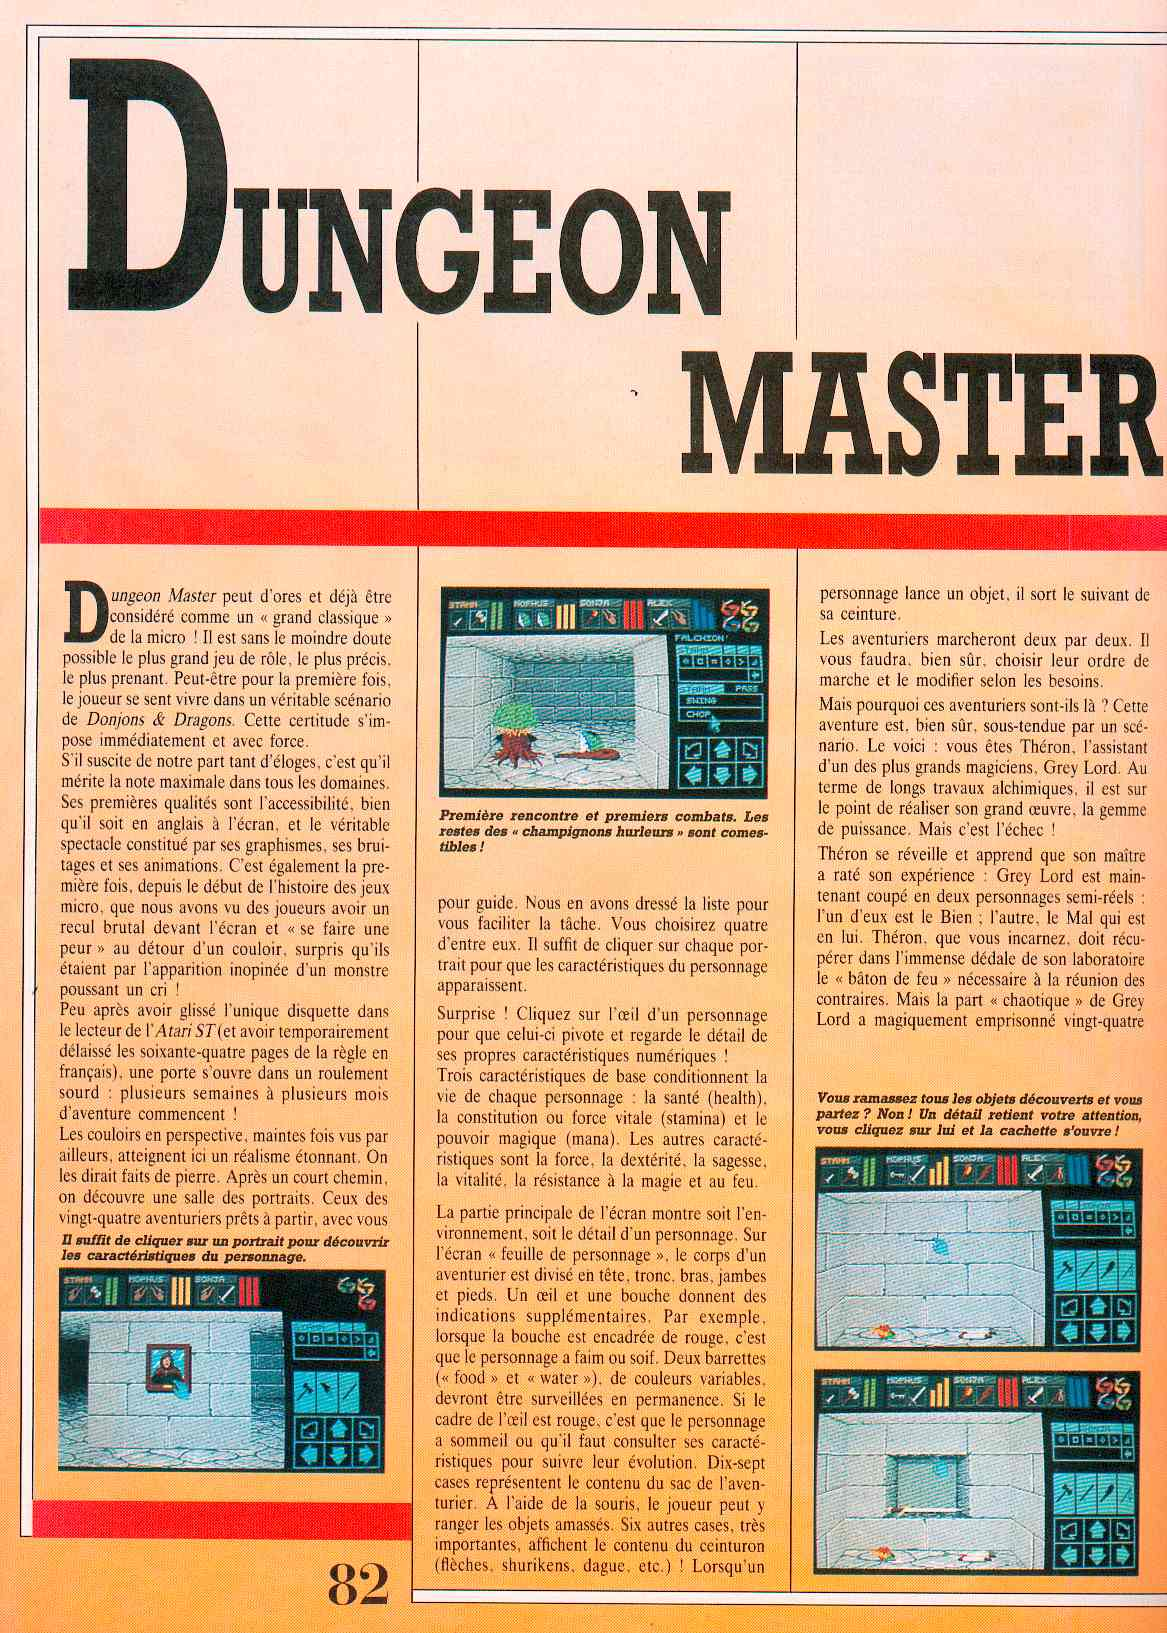 Dungeon Master guide published in French magazine 'Jeux et Stratégies', Issue #51, June 1998, Page 82